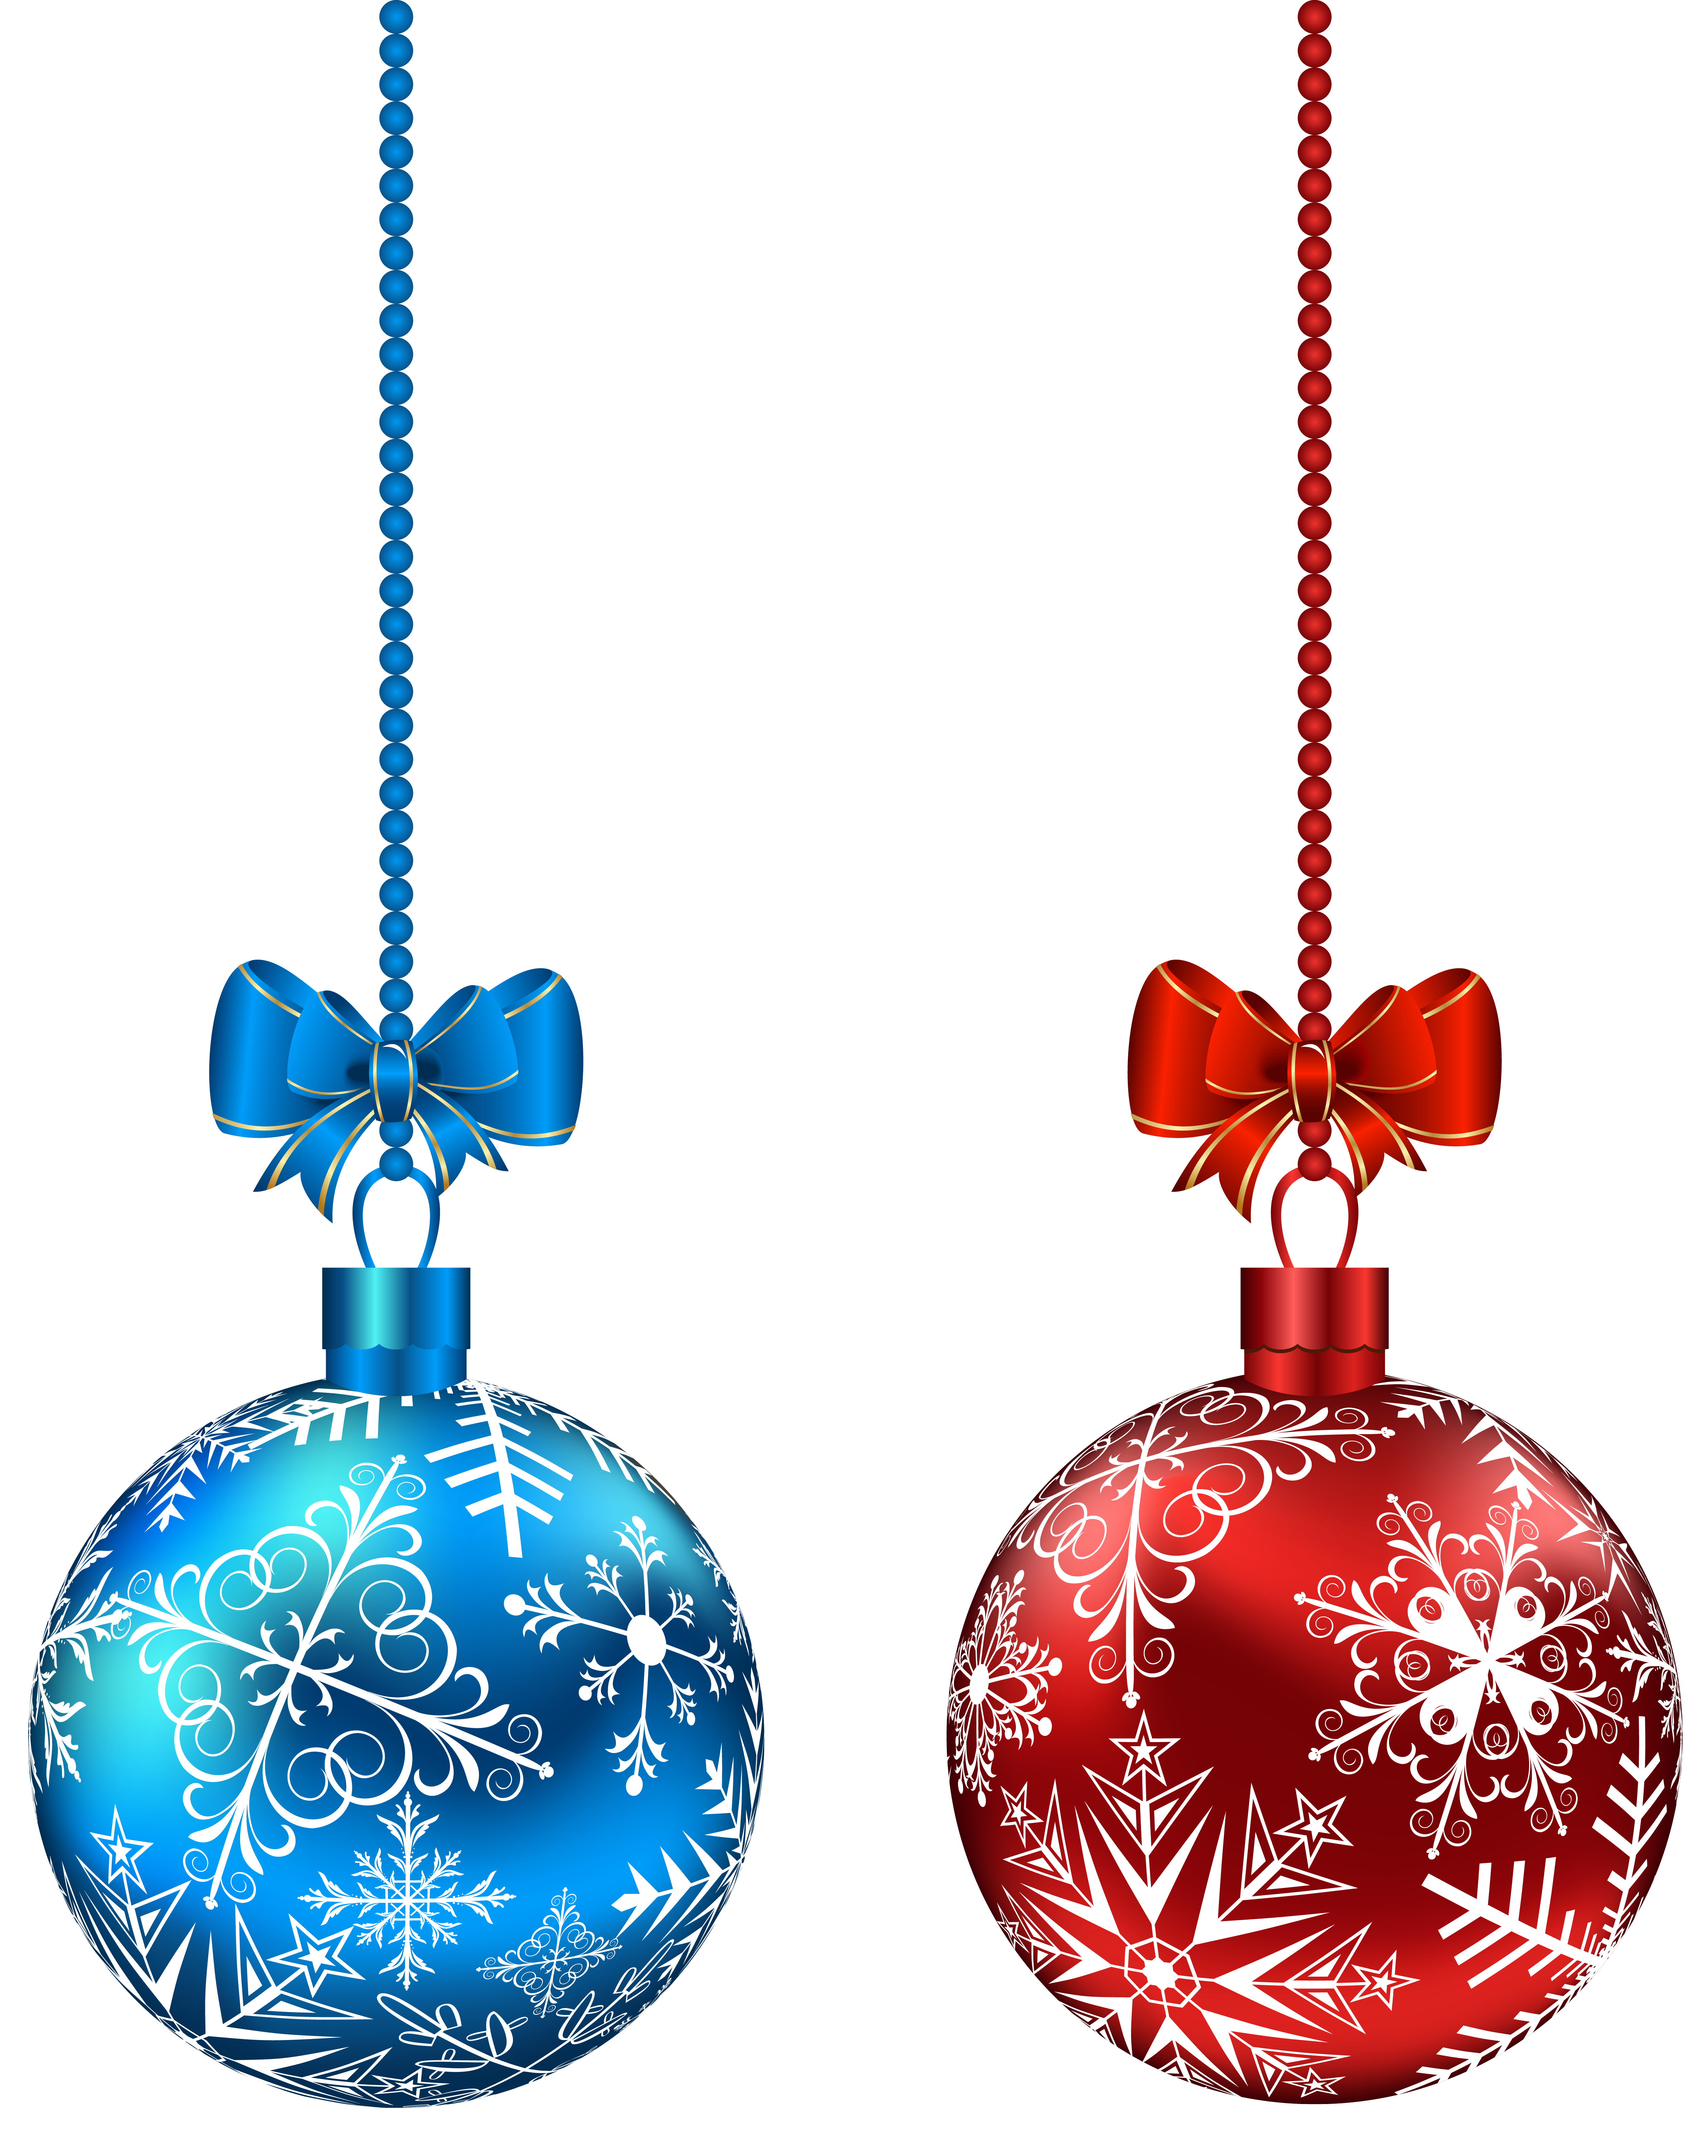 Transparent hanging christmas ornaments png. Ball clipart at getdrawings